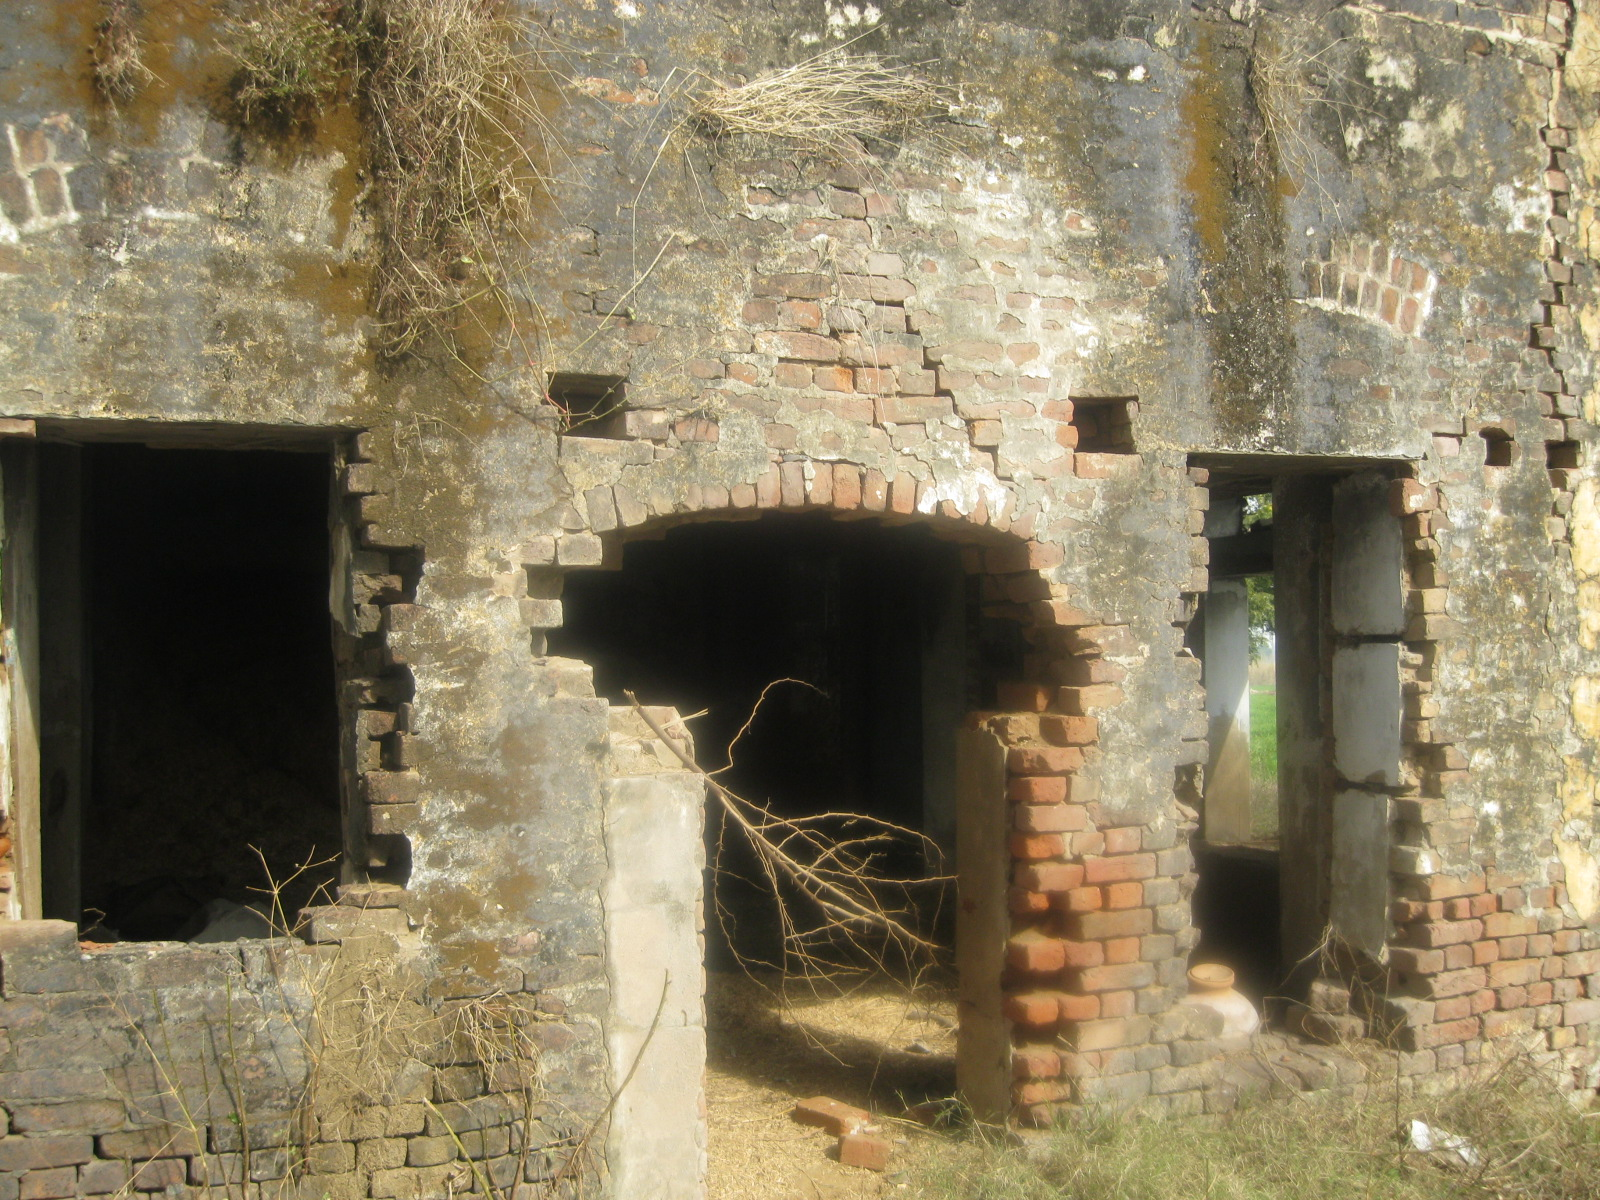 Ruins of Sikh Village Hondh Chillar, Haryana that was totally destroyed during Sikh Genocide 1984.